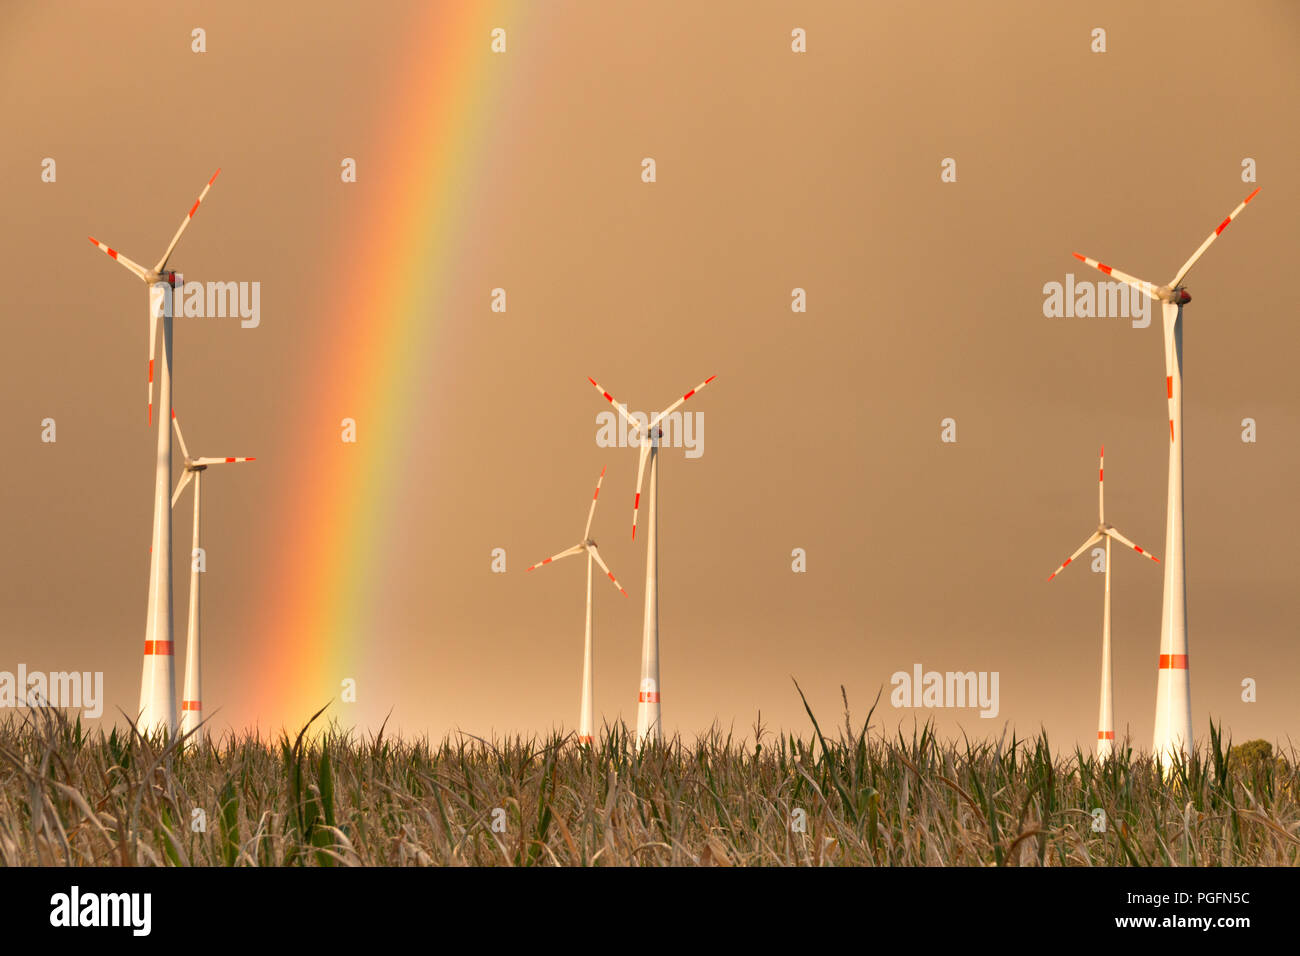 Germany - First storm brings rainbow. TRÜSTEDT, GERMANY - August 25, 2018: The first heavy rain of the season produces a rainbow behind wind turbines on a dry field in Altmark near Trüstedt, Germany. Credit: Mattis Kaminer/Alamy Live News Stock Photo